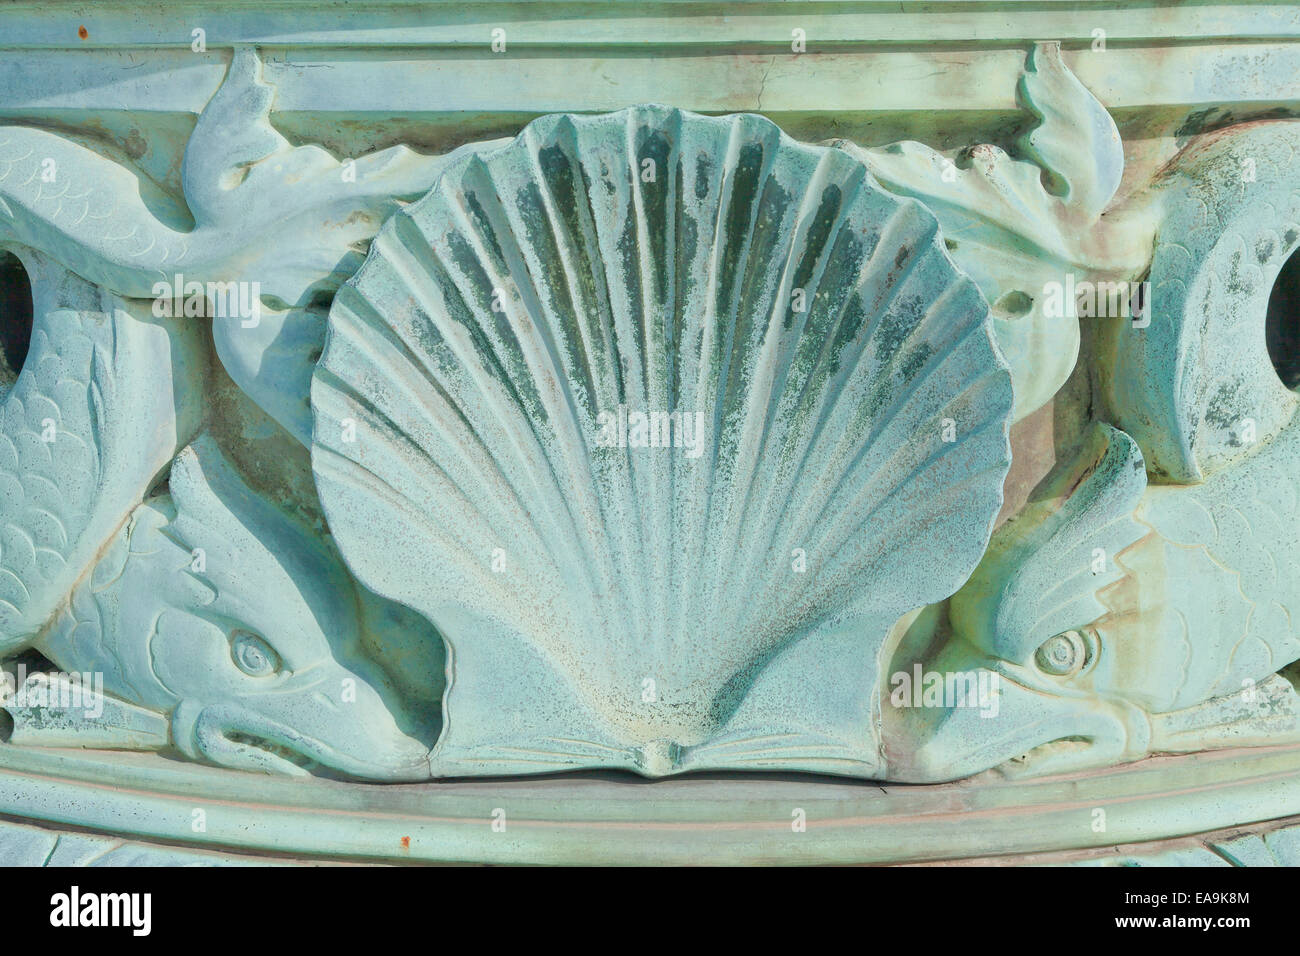 Scallop shell detail in ancient Greek theme sculpture - Stock Image